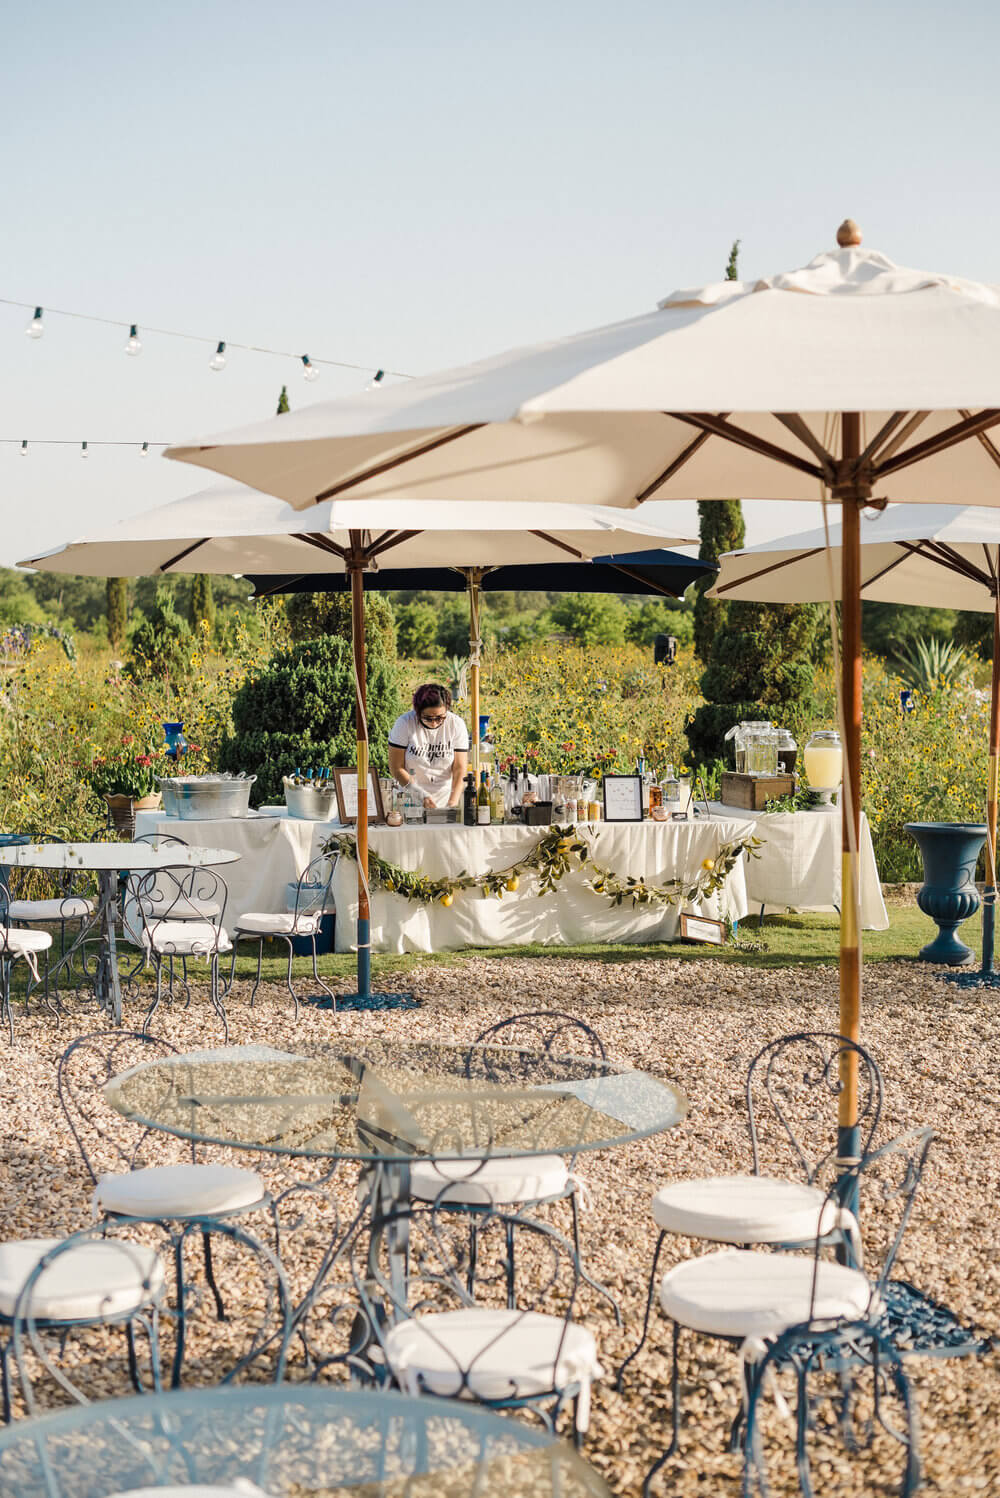 French country wedding inspiration around bar and drink tables.